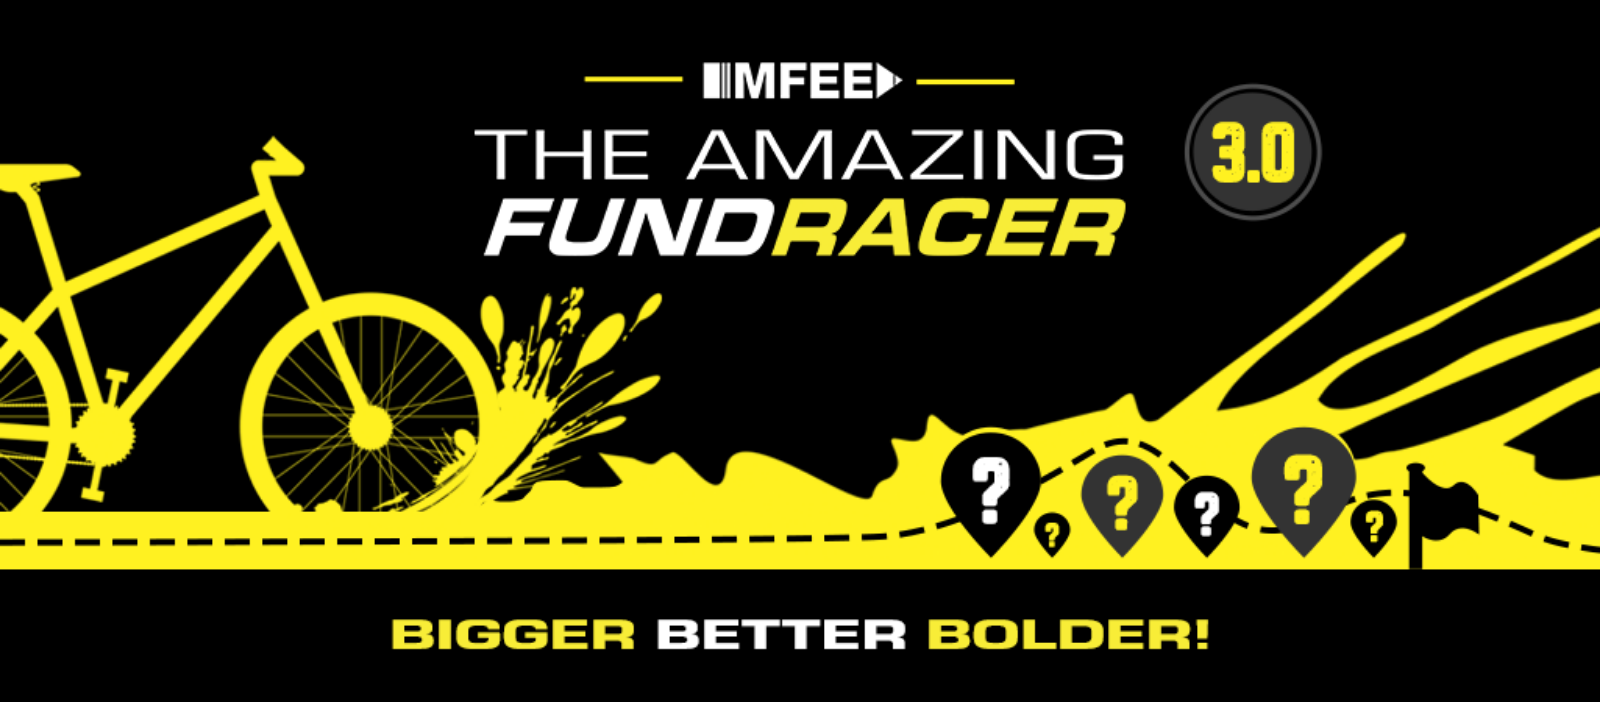 Don't Miss MFEE Amazing FundRACER, A Family-Friendly Festival , This Sunday!